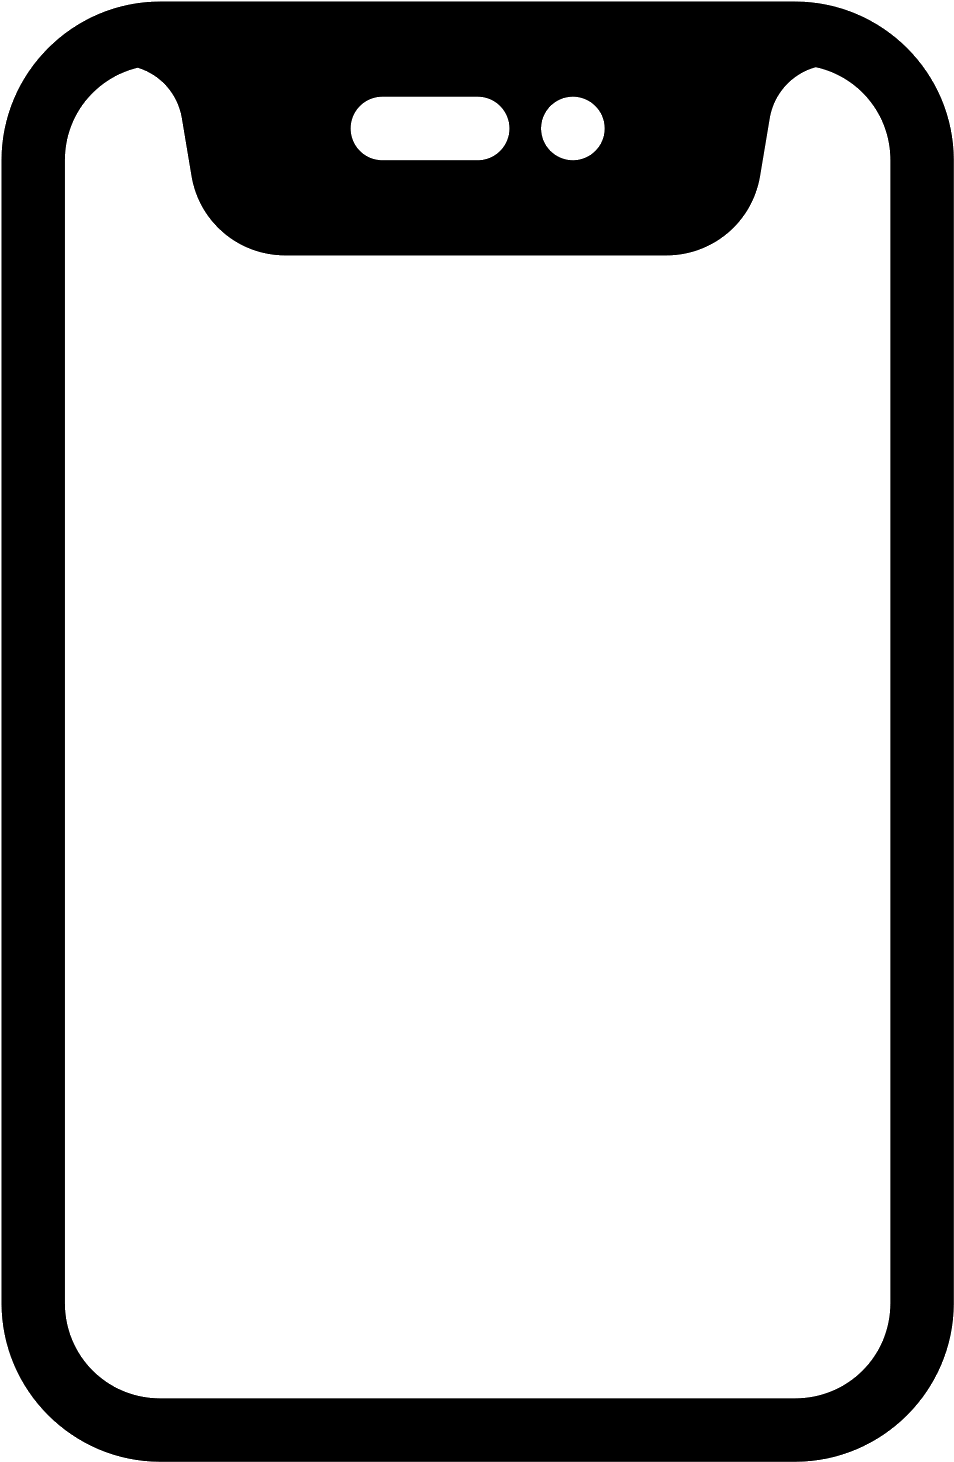 Iphone Vector Png : iphone, vector, Download, Iphone, Filled, Vector, Image, Background, PNGkey.com